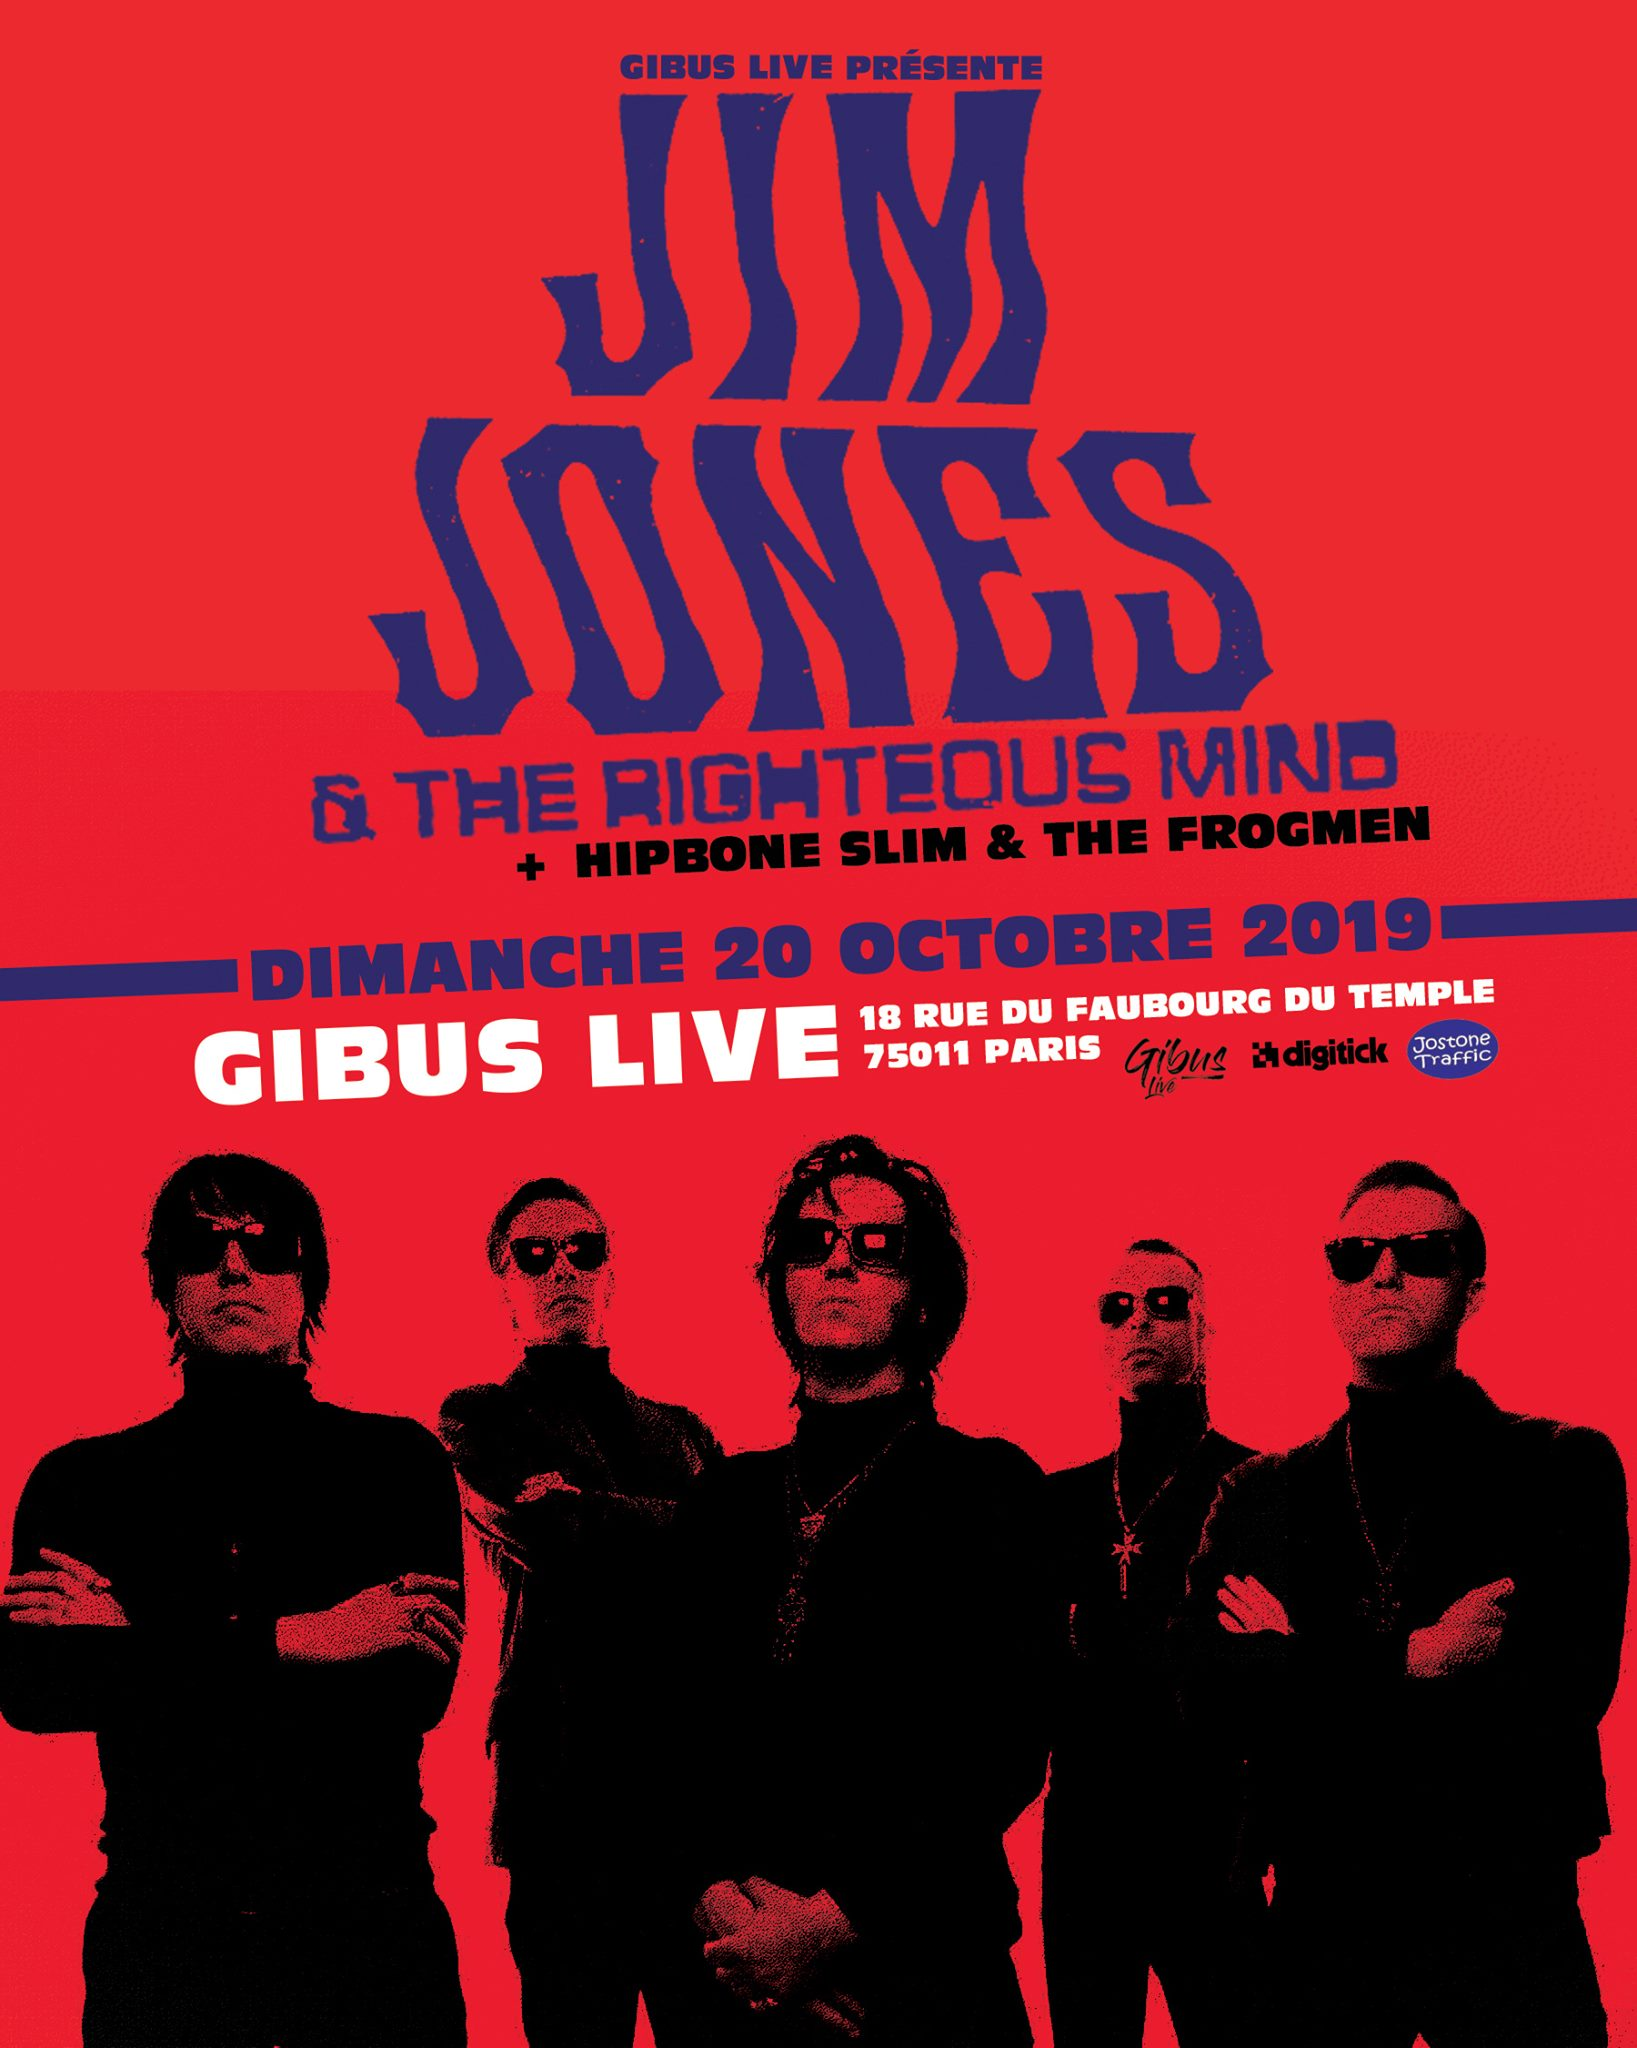 20.10.2019 – Jim Jones & The Righteous Mind + Hipbone Slim & The Frogmen